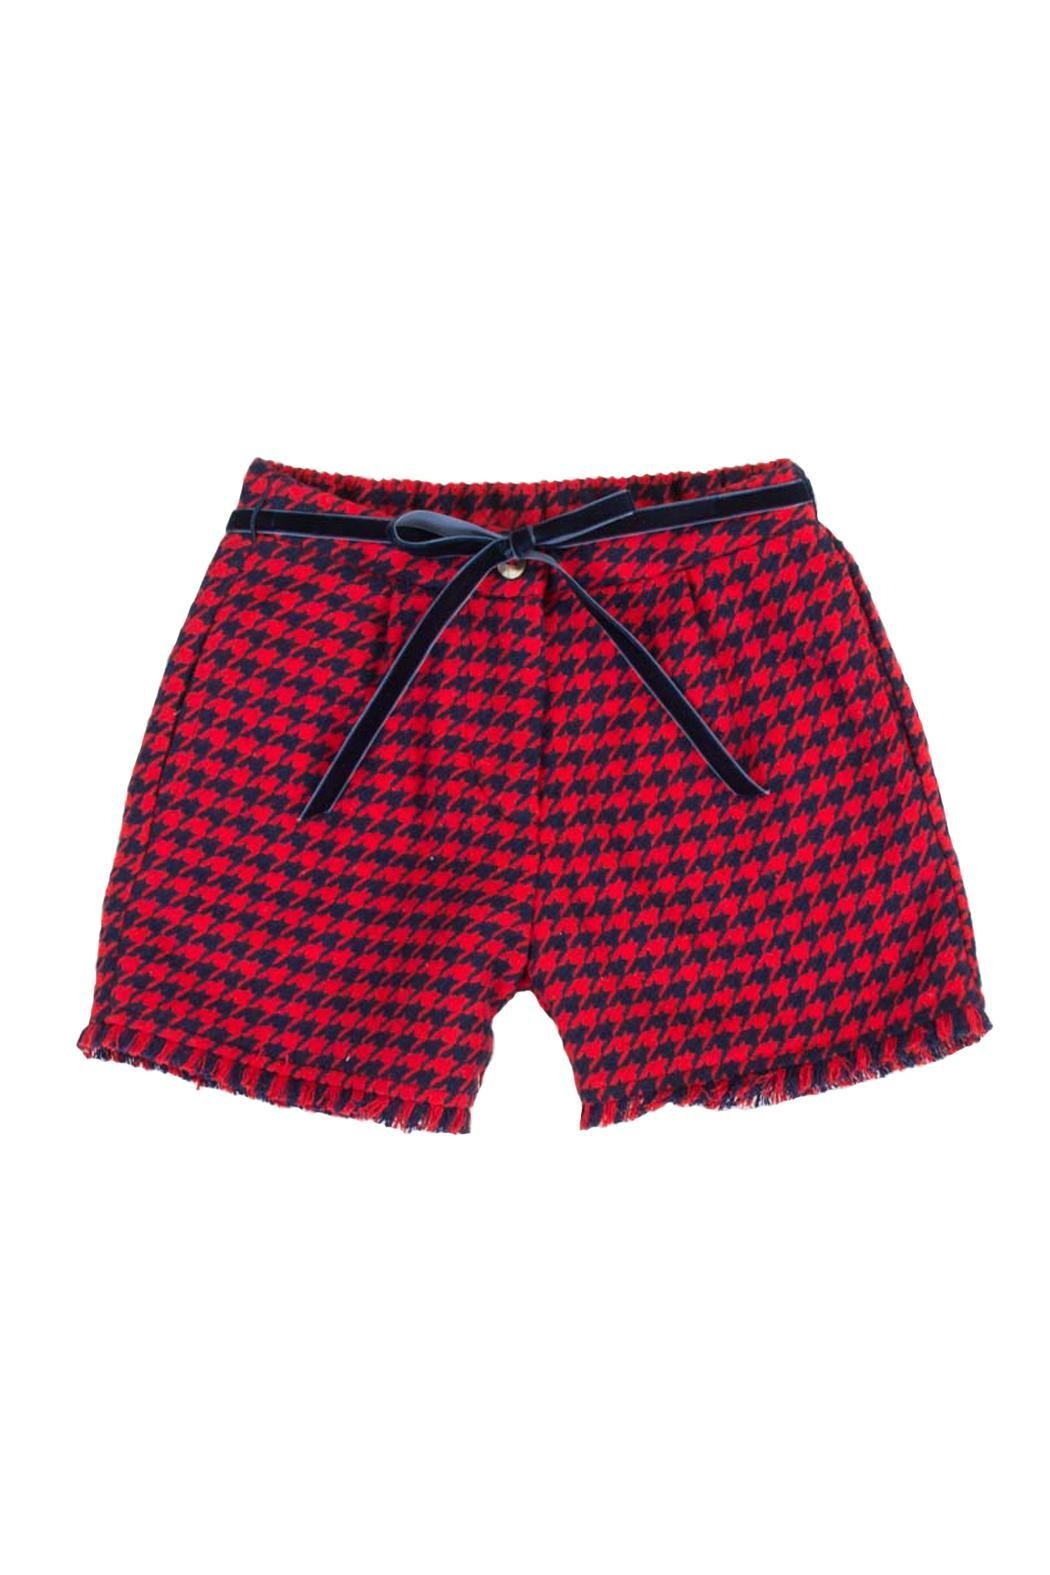 Malvi & Co. Houndstooth Shorts. - Front Cropped Image